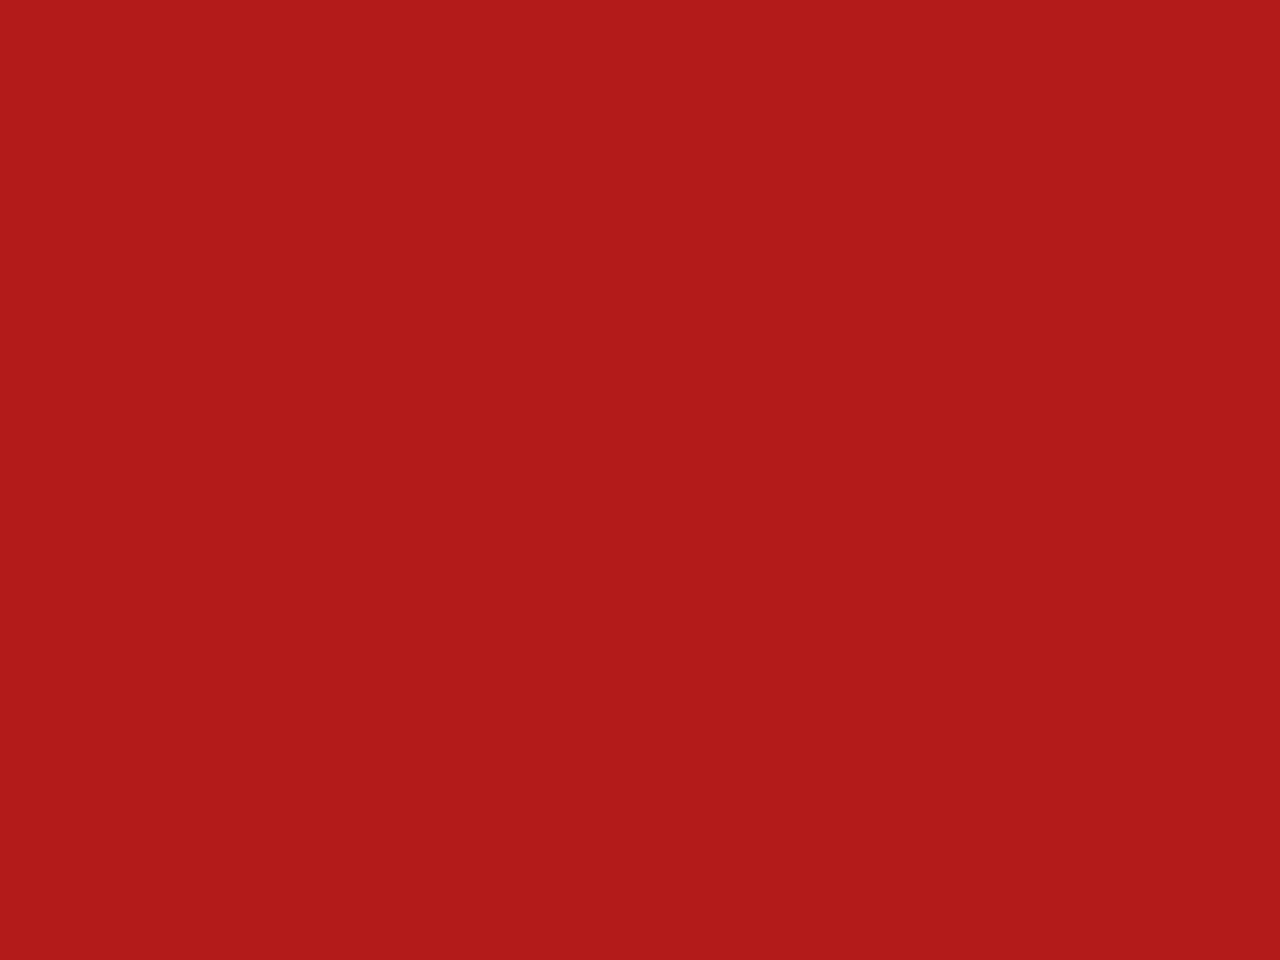 1280x960 Cornell Red Solid Color Background